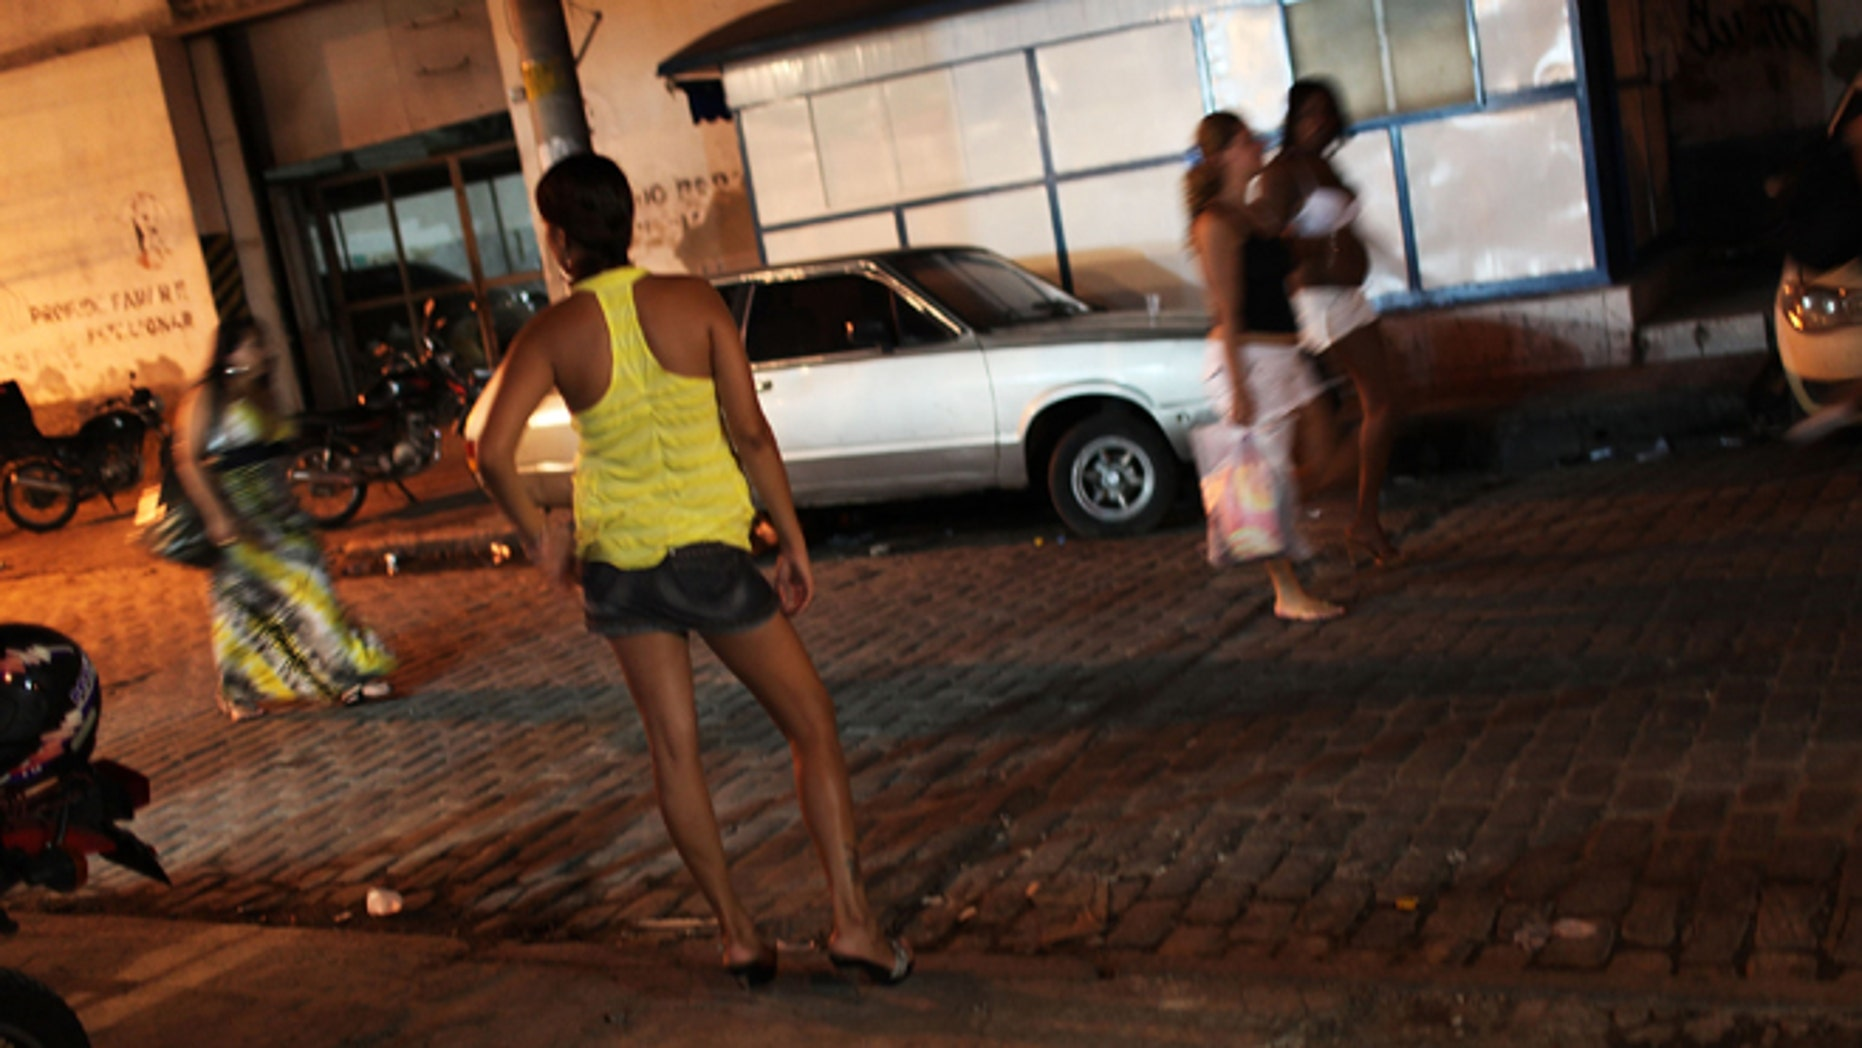 RIO DE JANEIRO, BRAZIL - DECEMBER 11: Female prostitutes walk the streets of the red light district, Vila Mimosa, following a fashion show with clothes designed by sex workers on December 11, 2009 in Rio de Janeiro, Brazil. The fashion show, which is a government sponsored project to give female prostitutes other career choices, displayed dozens of new designs on both models and three fellow prostitutes. The Association of the Residents and Friends of Vila Mimosa teaches the women skills in sewing and design. Out of the 105 woman to enroll in the fashion design program 65 have now found jobs in other professions besides working in the sex industry.  (Photo by Spencer Platt/Getty Images)